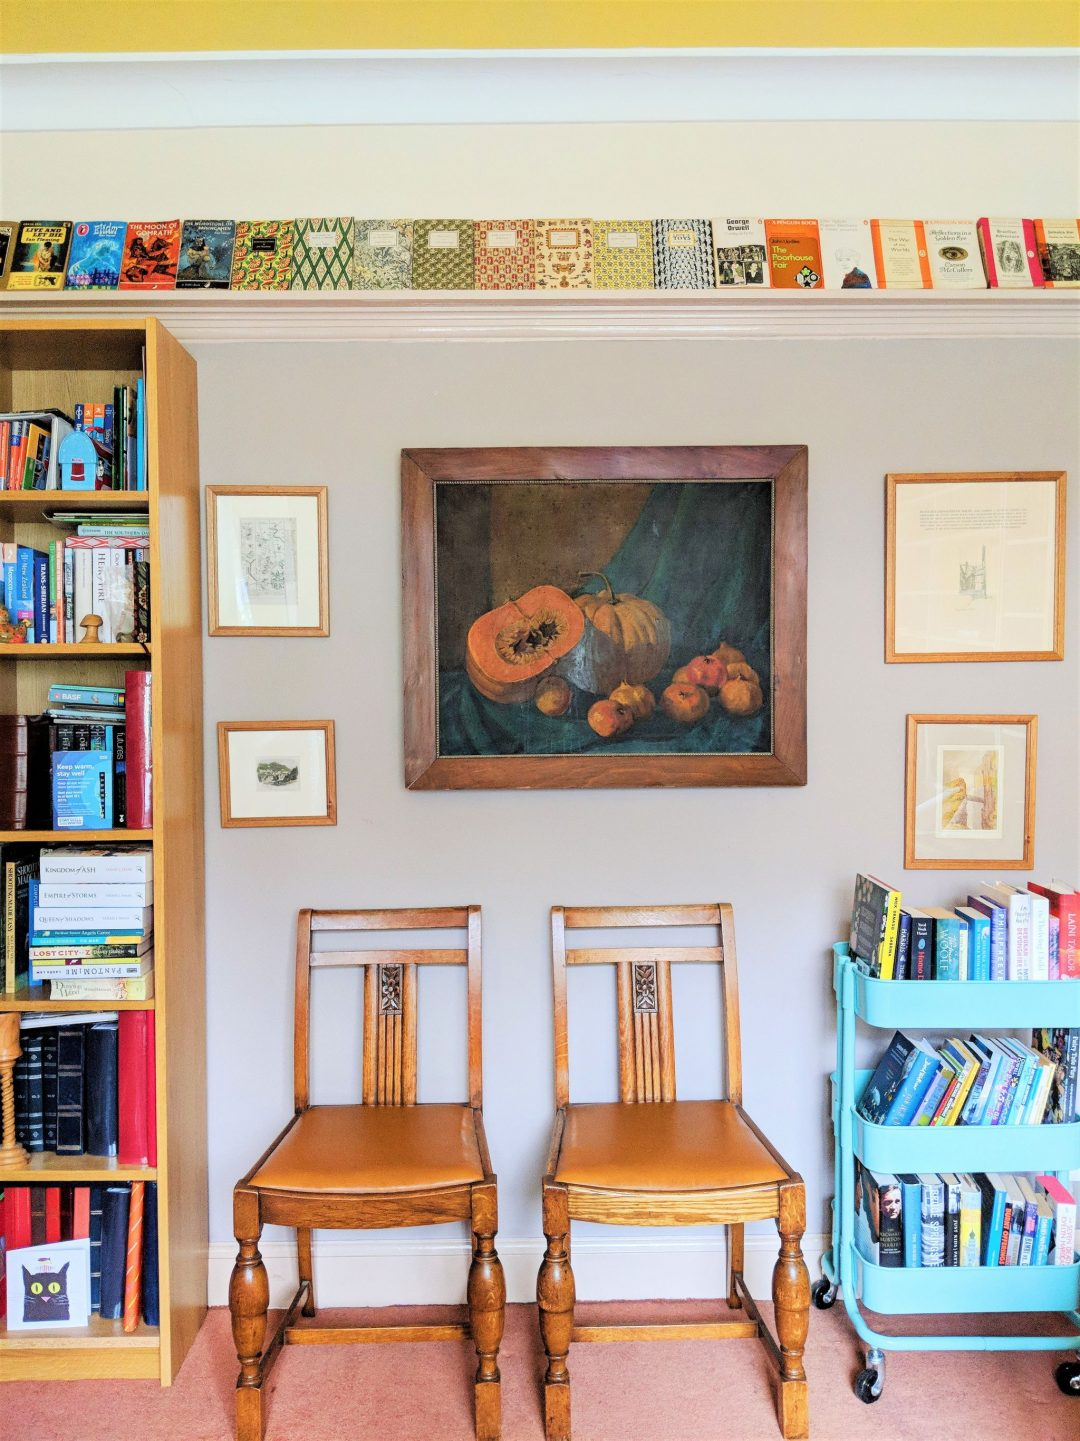 A room with two chairs, a picture rail lined with books and a full book trolley to illustrate creative ways to display books.